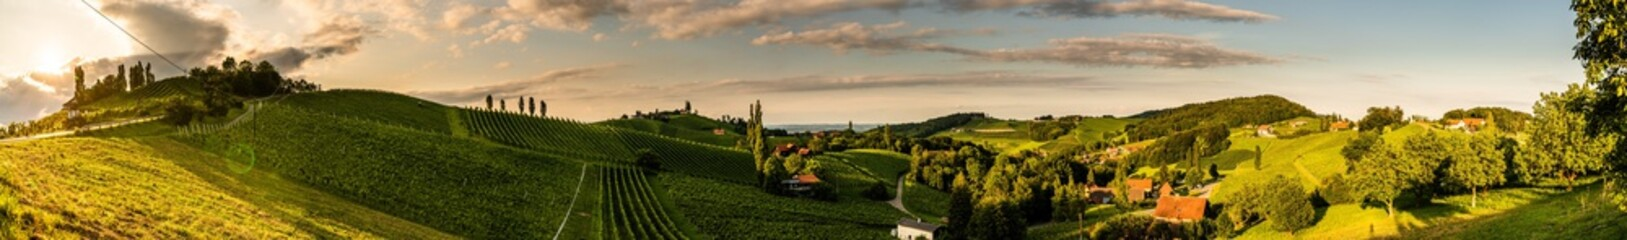 Wall Murals Honey Panorama view of Vineyards in summer in south Styria, Austria tourist spot, travel destination.